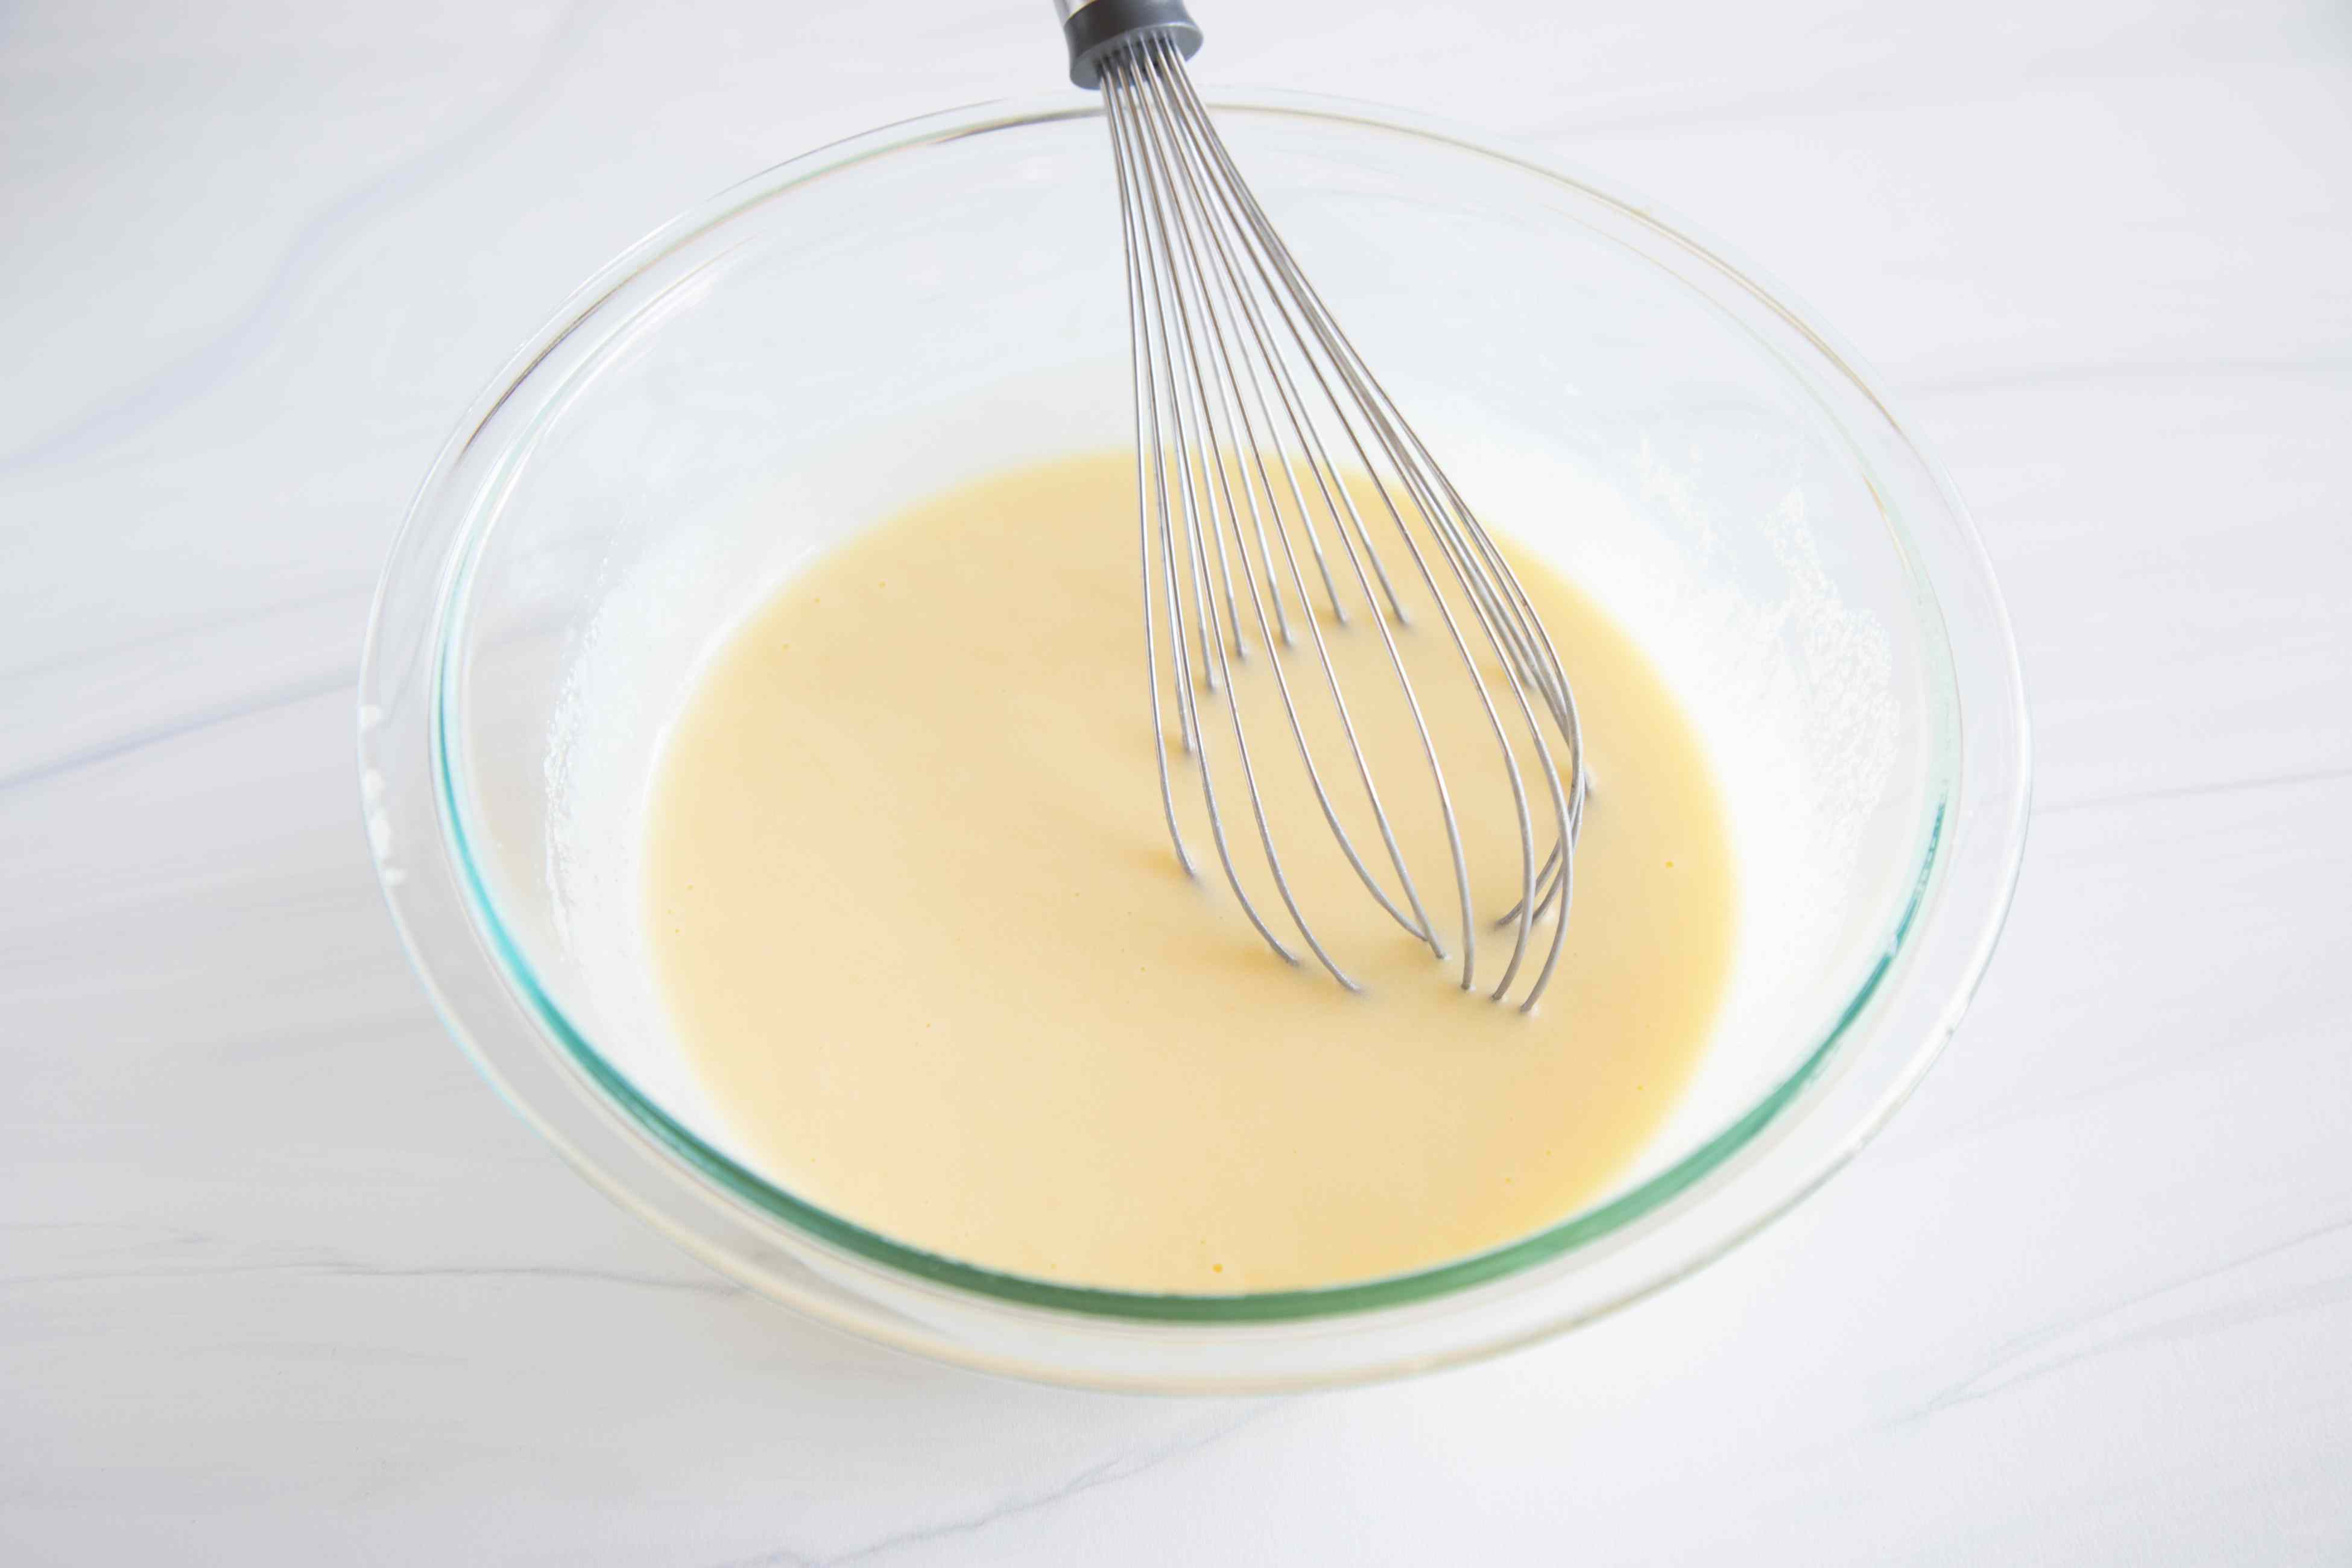 Yogurt Cake Recipe in a glass bowl with a whisk.